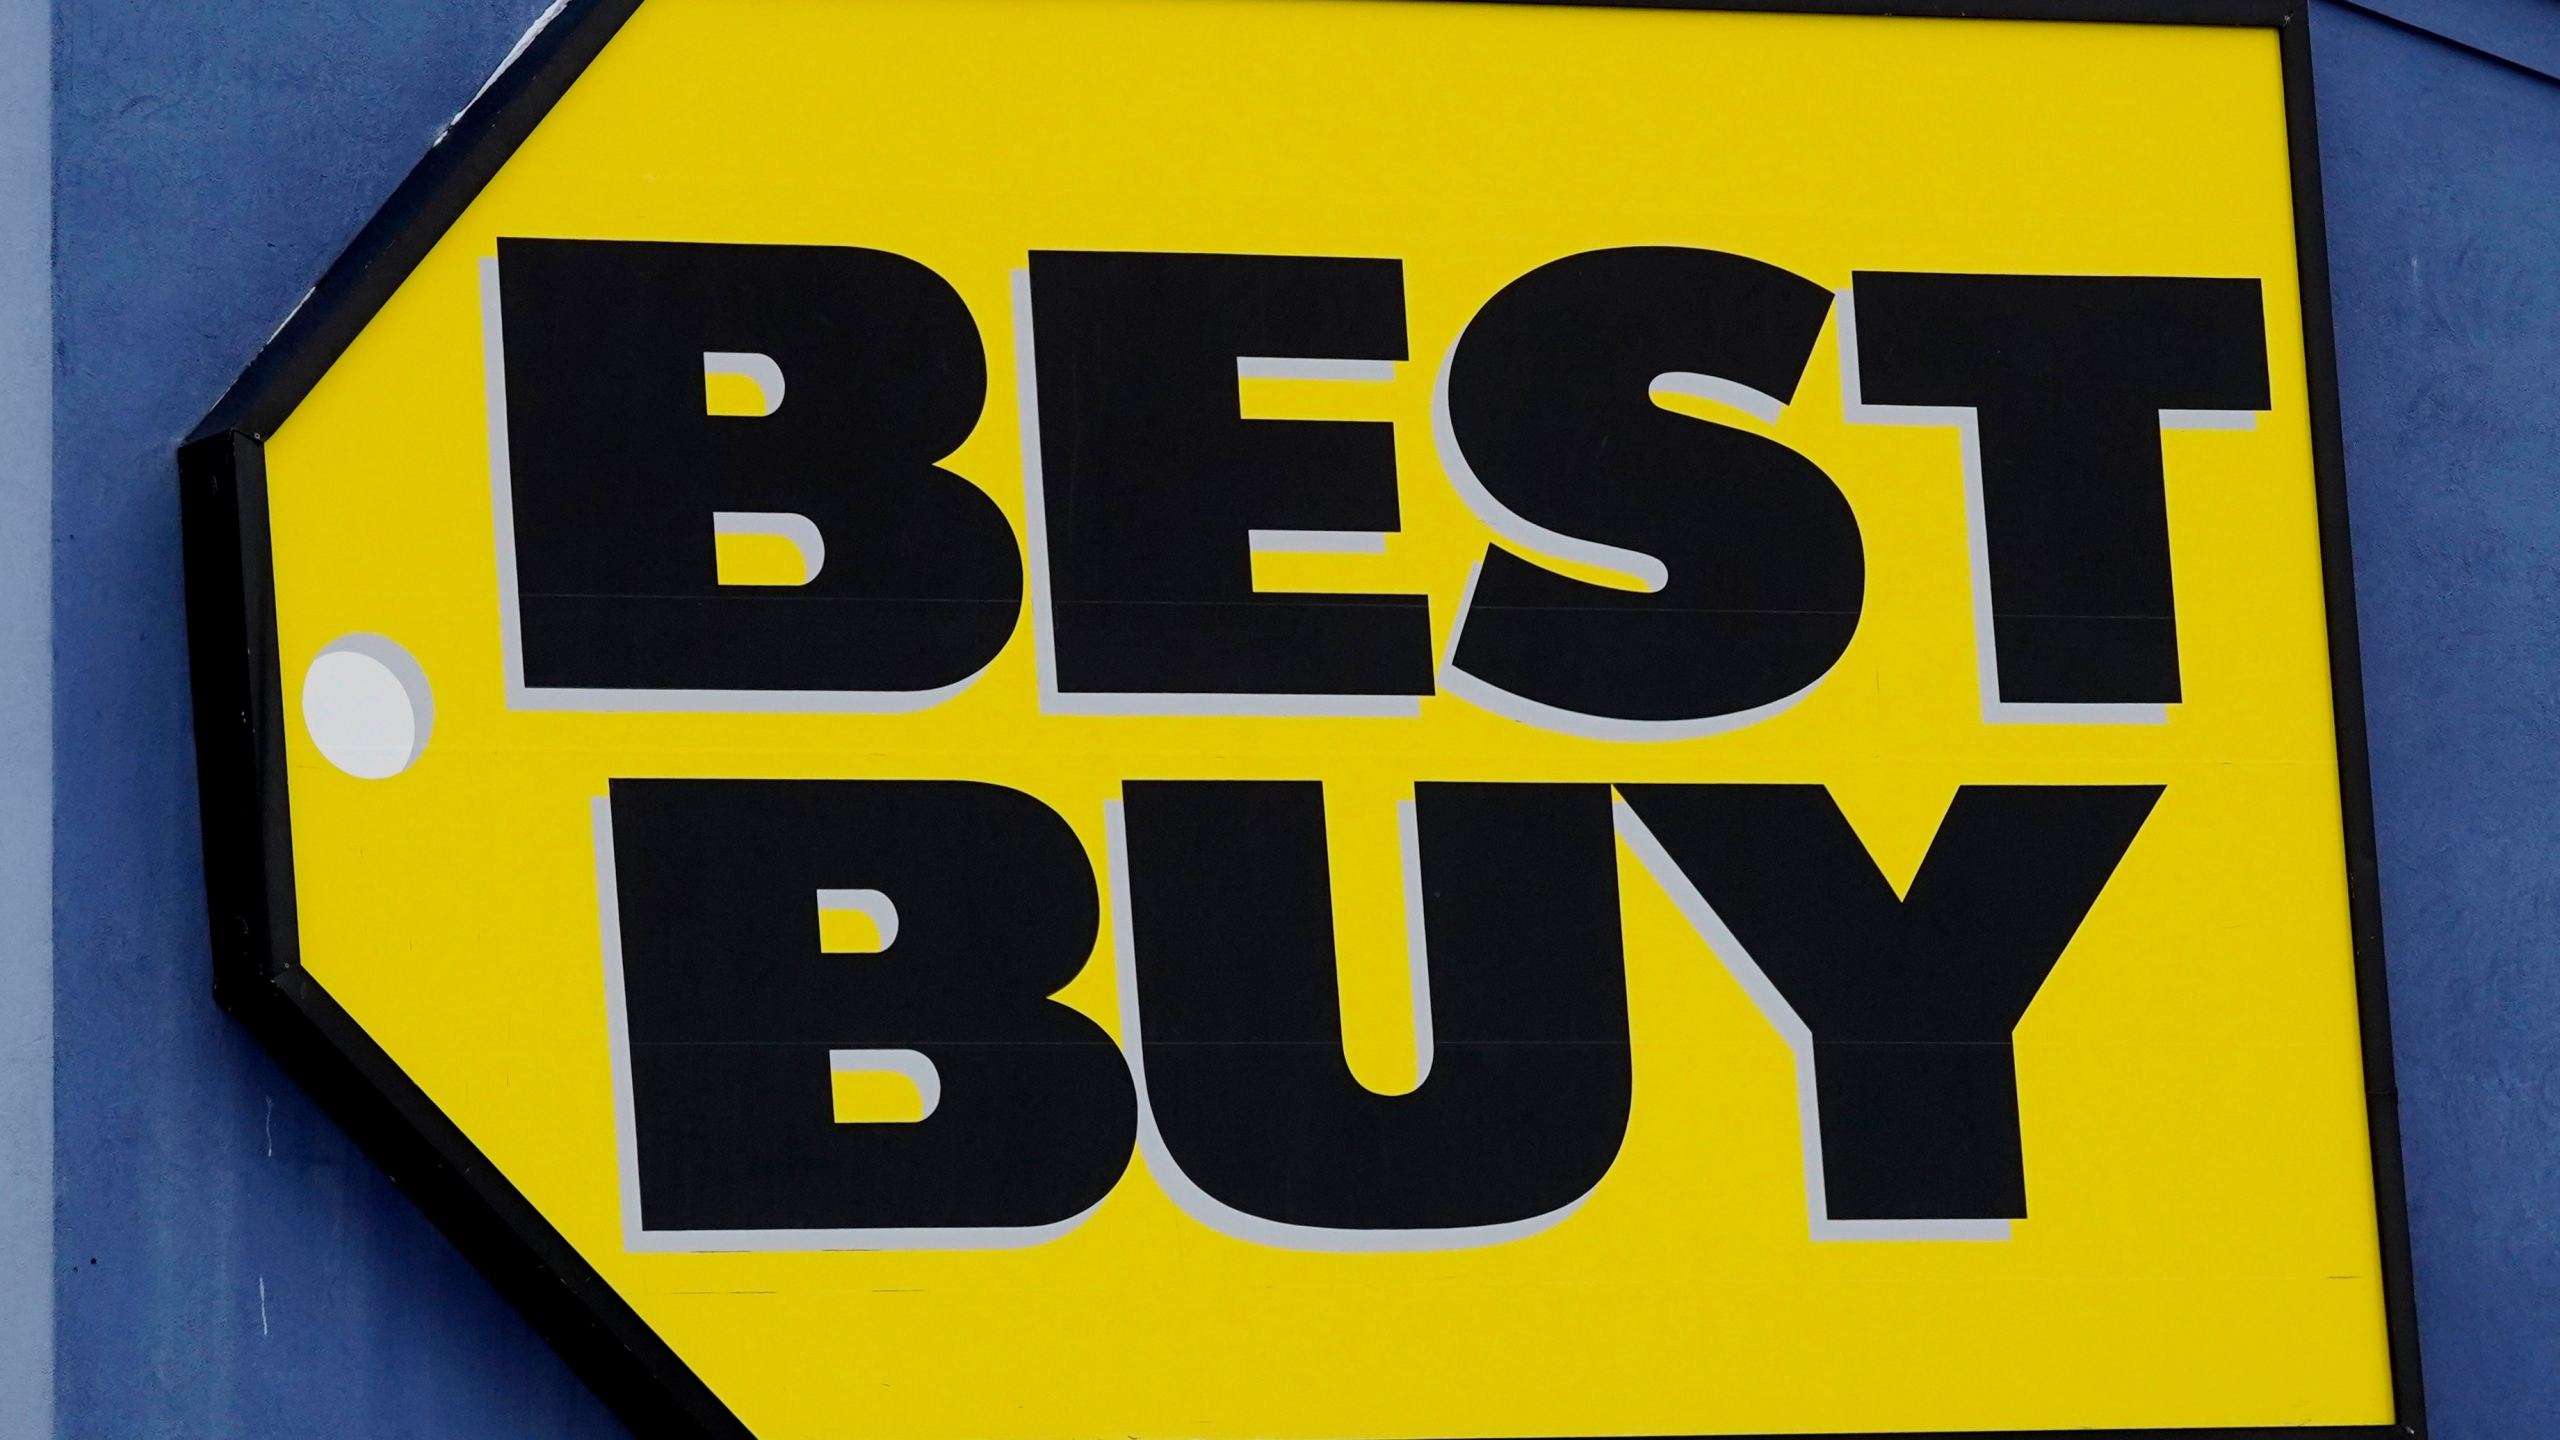 A Best Buy store sign is displayed in Arlington Heights, Ill., Saturday, Feb. 6, 2021. Best Buys is closing five stores in four states in the next month. The retailer plans to close two Richmond, Va., area stores, along with one store each in Syracuse, N.Y., Carbondale, Ill., and Brockton, Mass. (AP Photo/Nam Y. Huh)